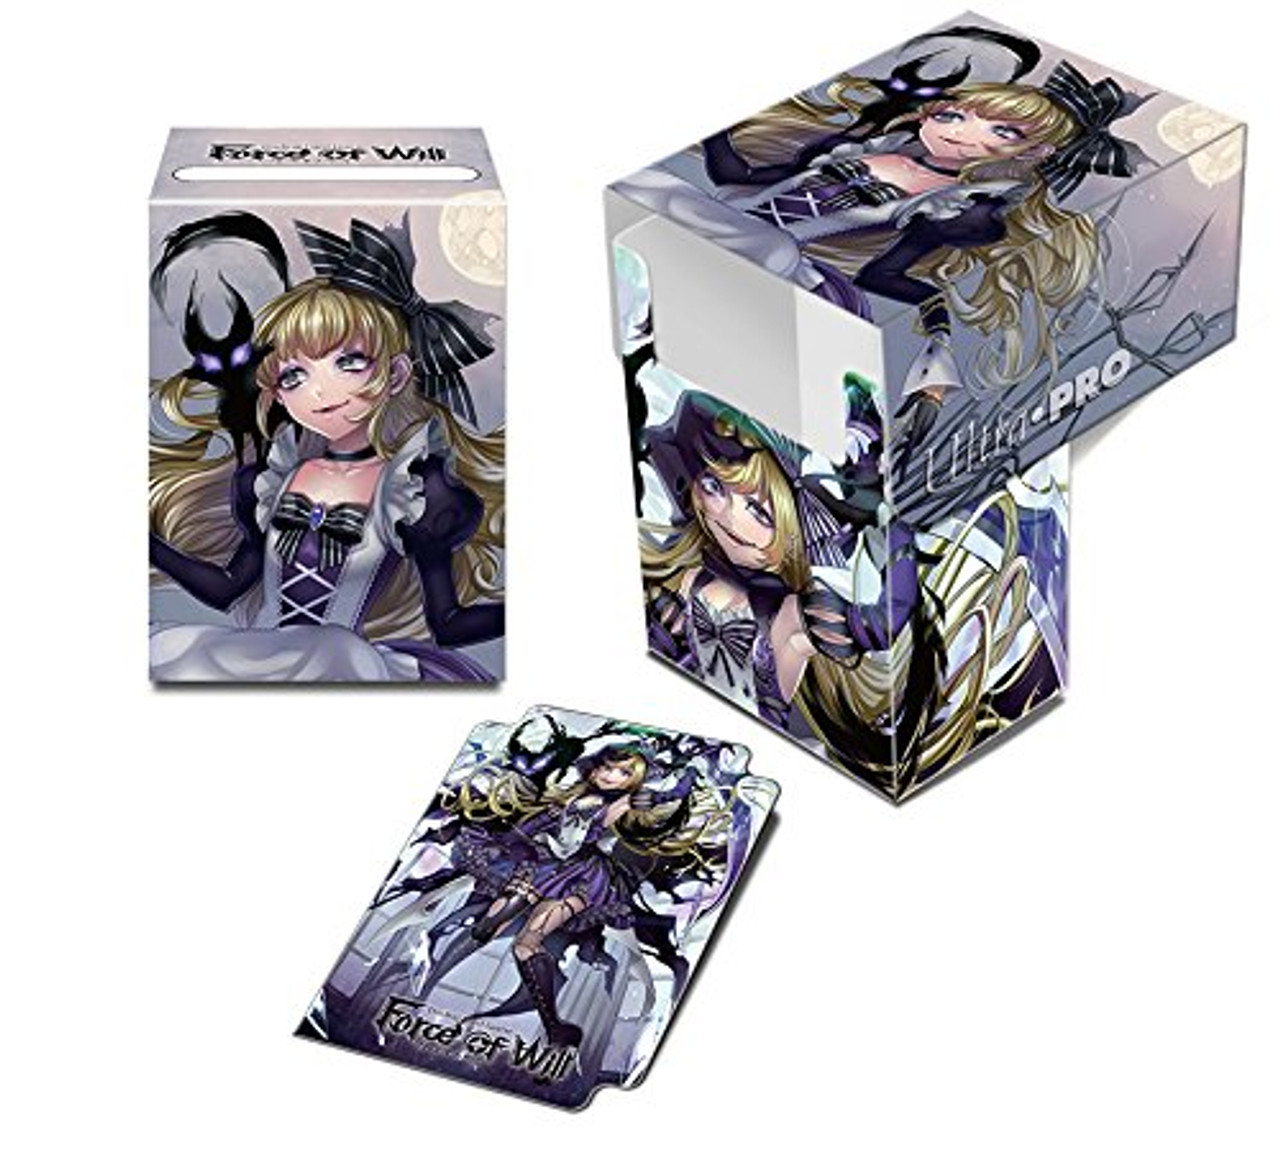 Deck Box - Force of Will (60/cs) - Dark Alice - - Special Order